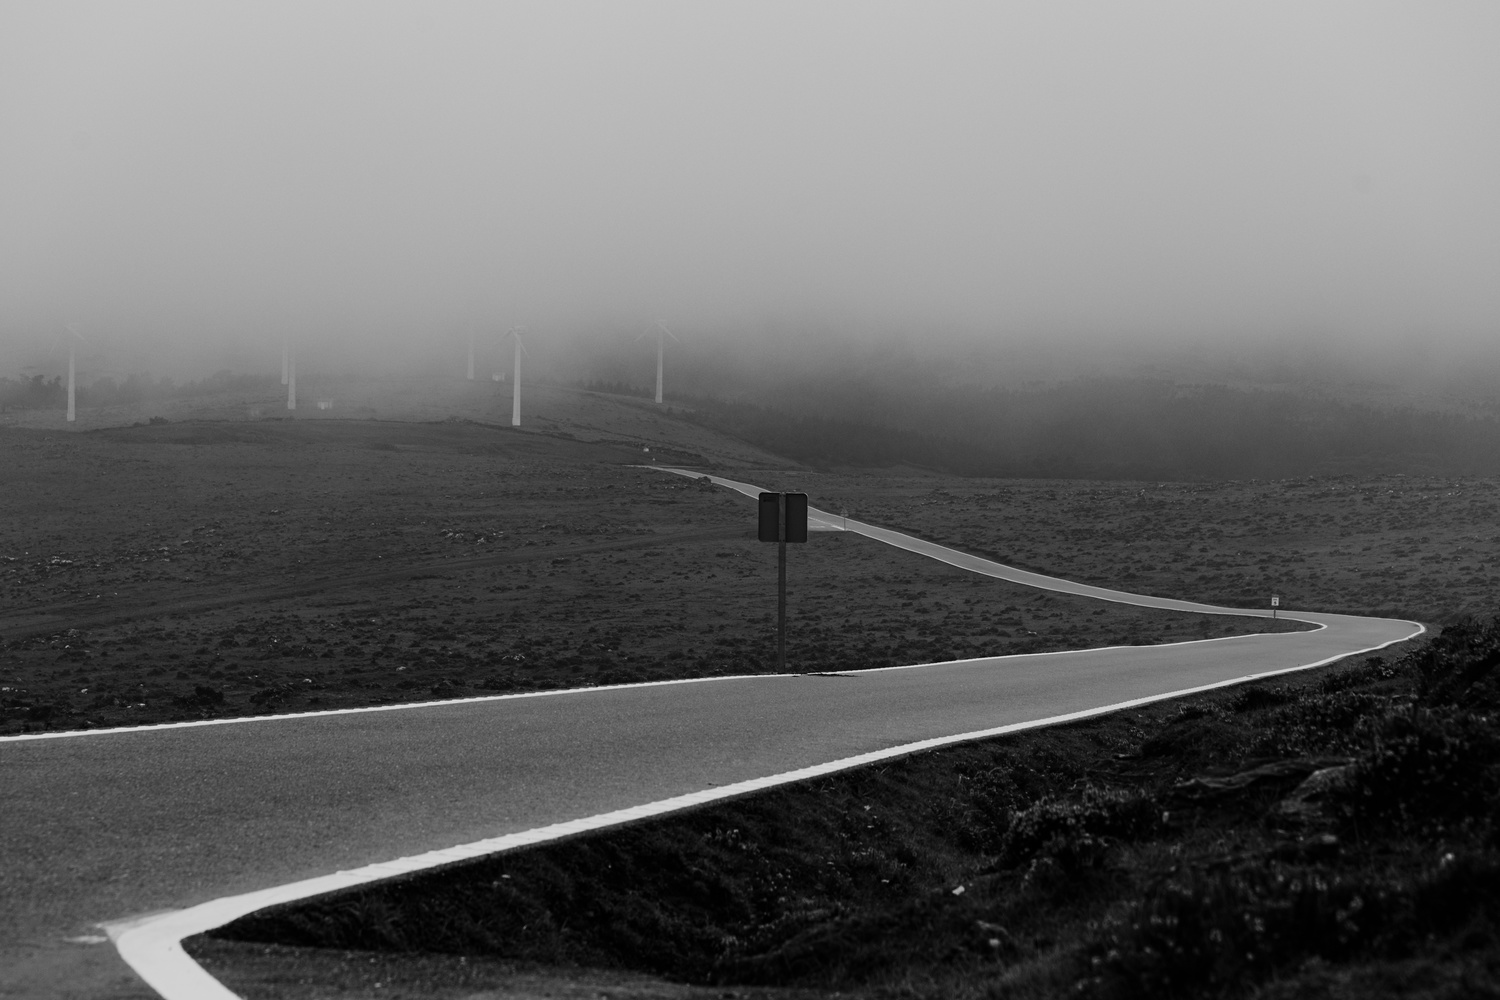 Road to nowhere by Ave Calvar Martinez